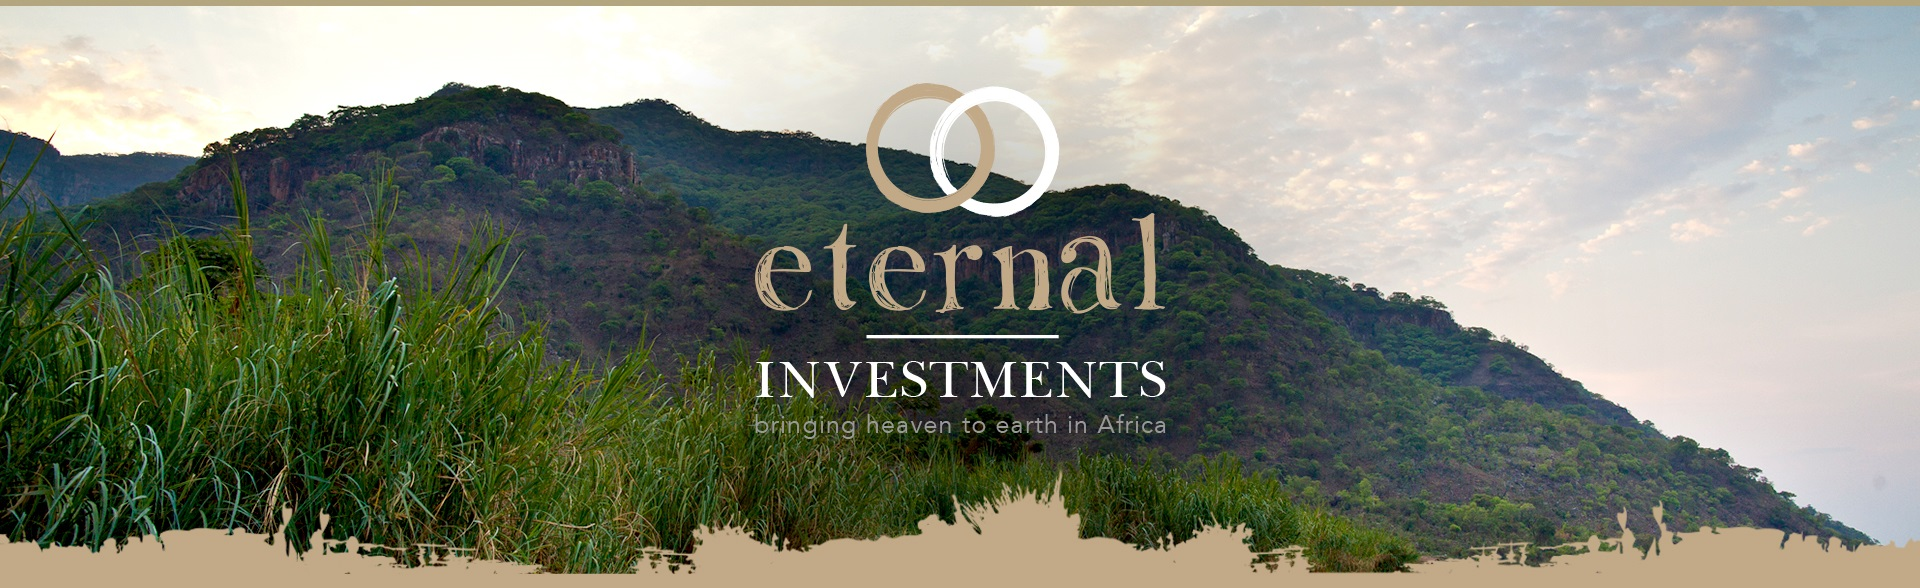 eternal-investment-home-banner.jpg